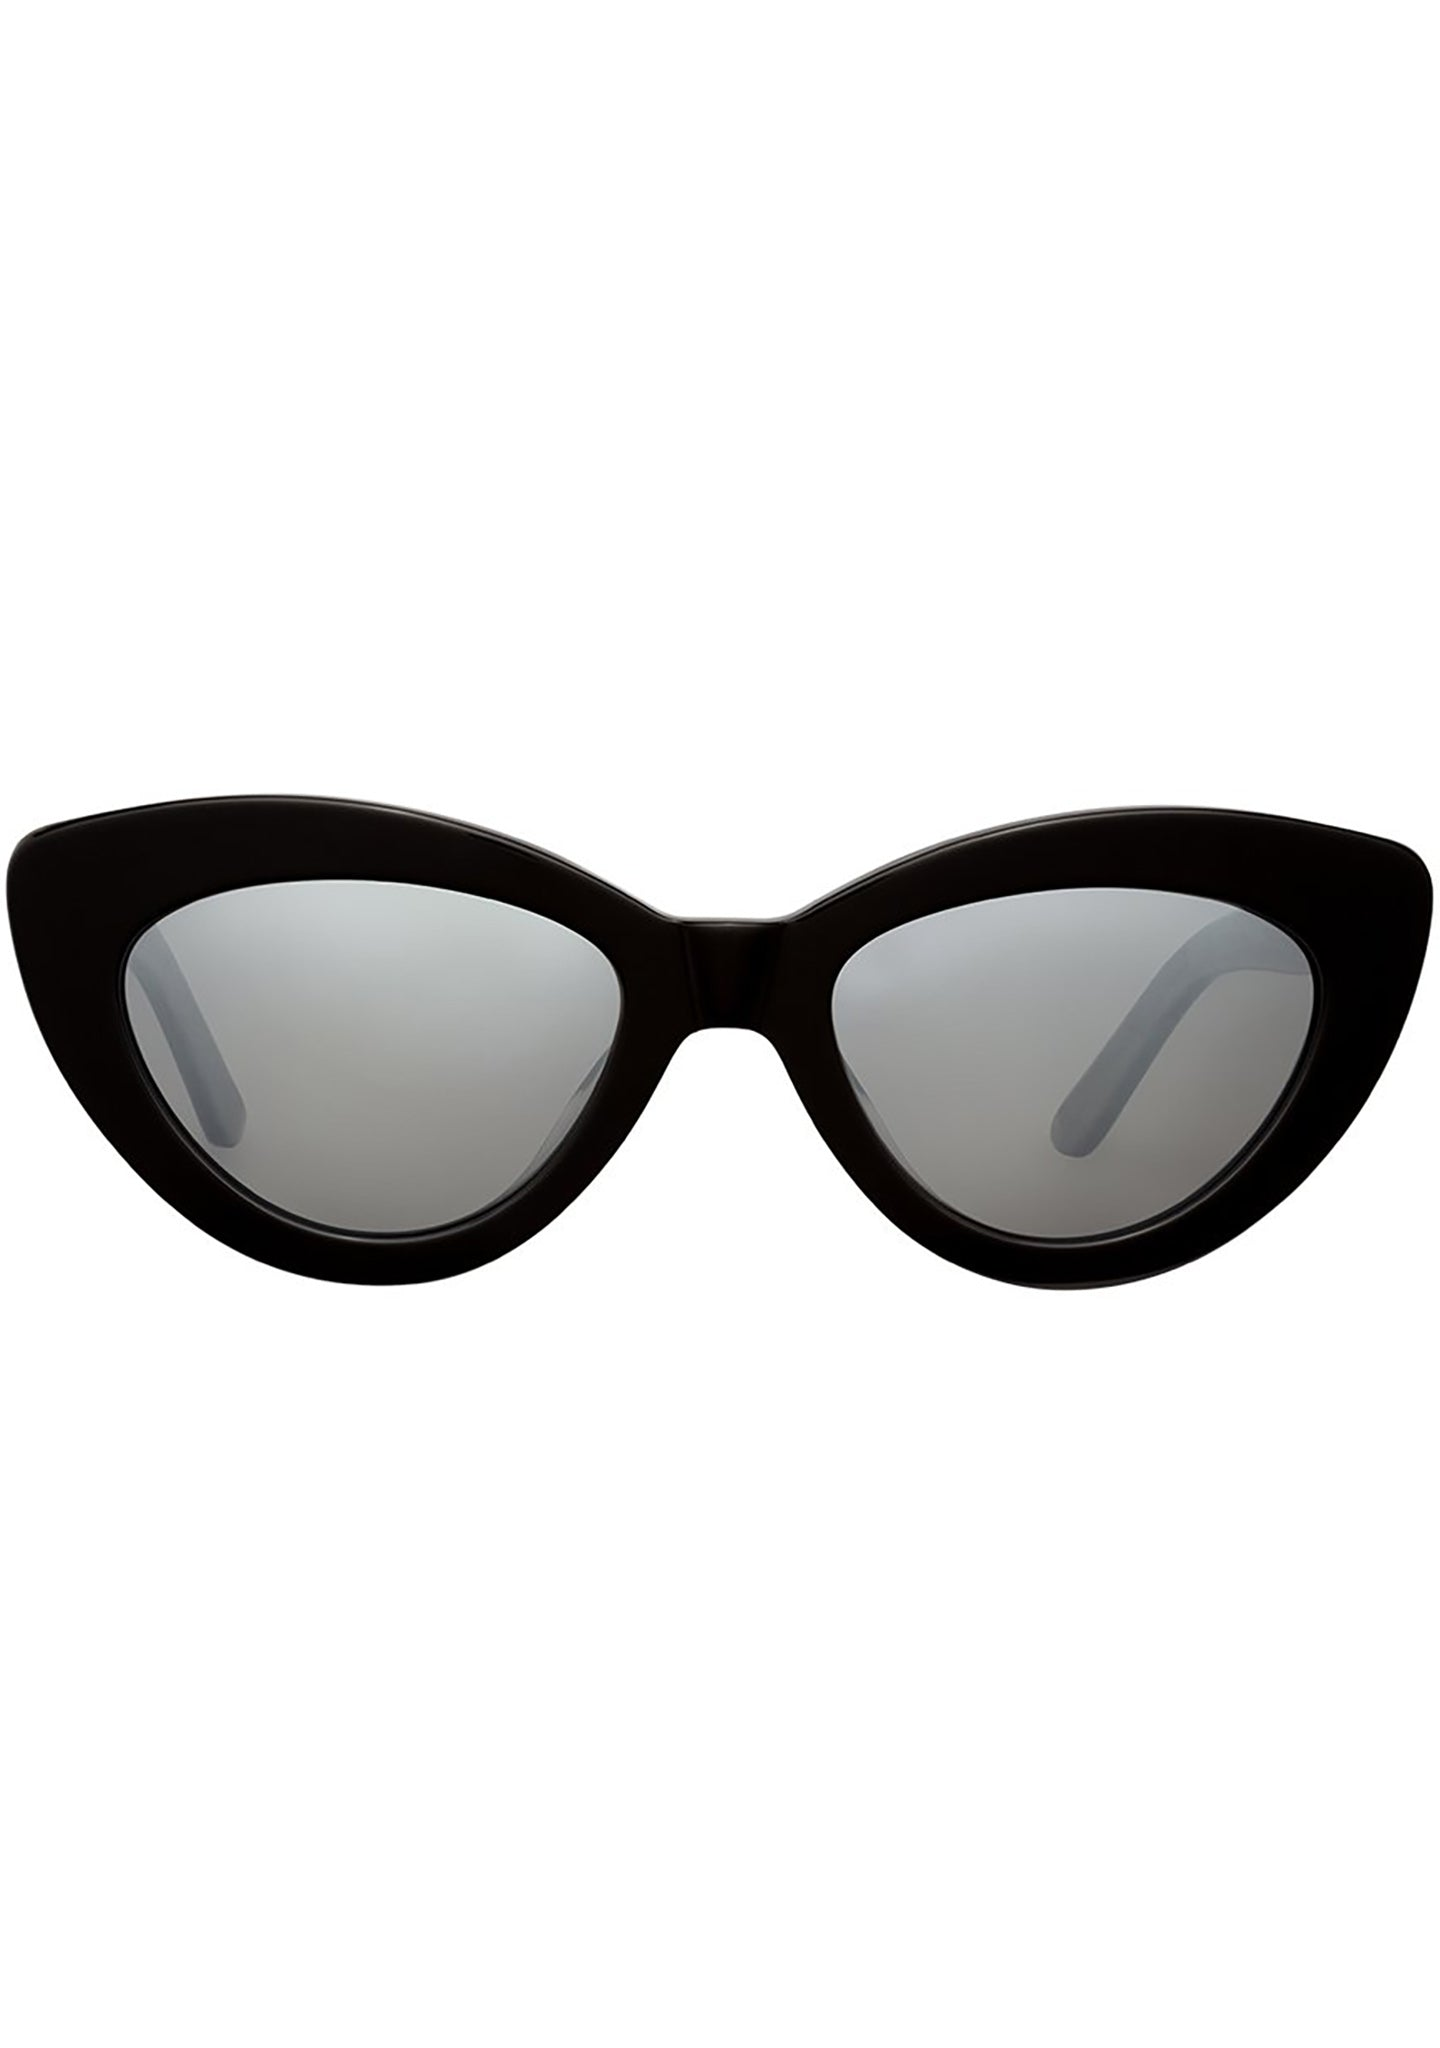 4f385b51a34c ... Shop Thomas James LA by Perverse JJ Sunglasses in Tuxedo at  LAStyleRush.com. JJ Sunglasses in Tuxedo